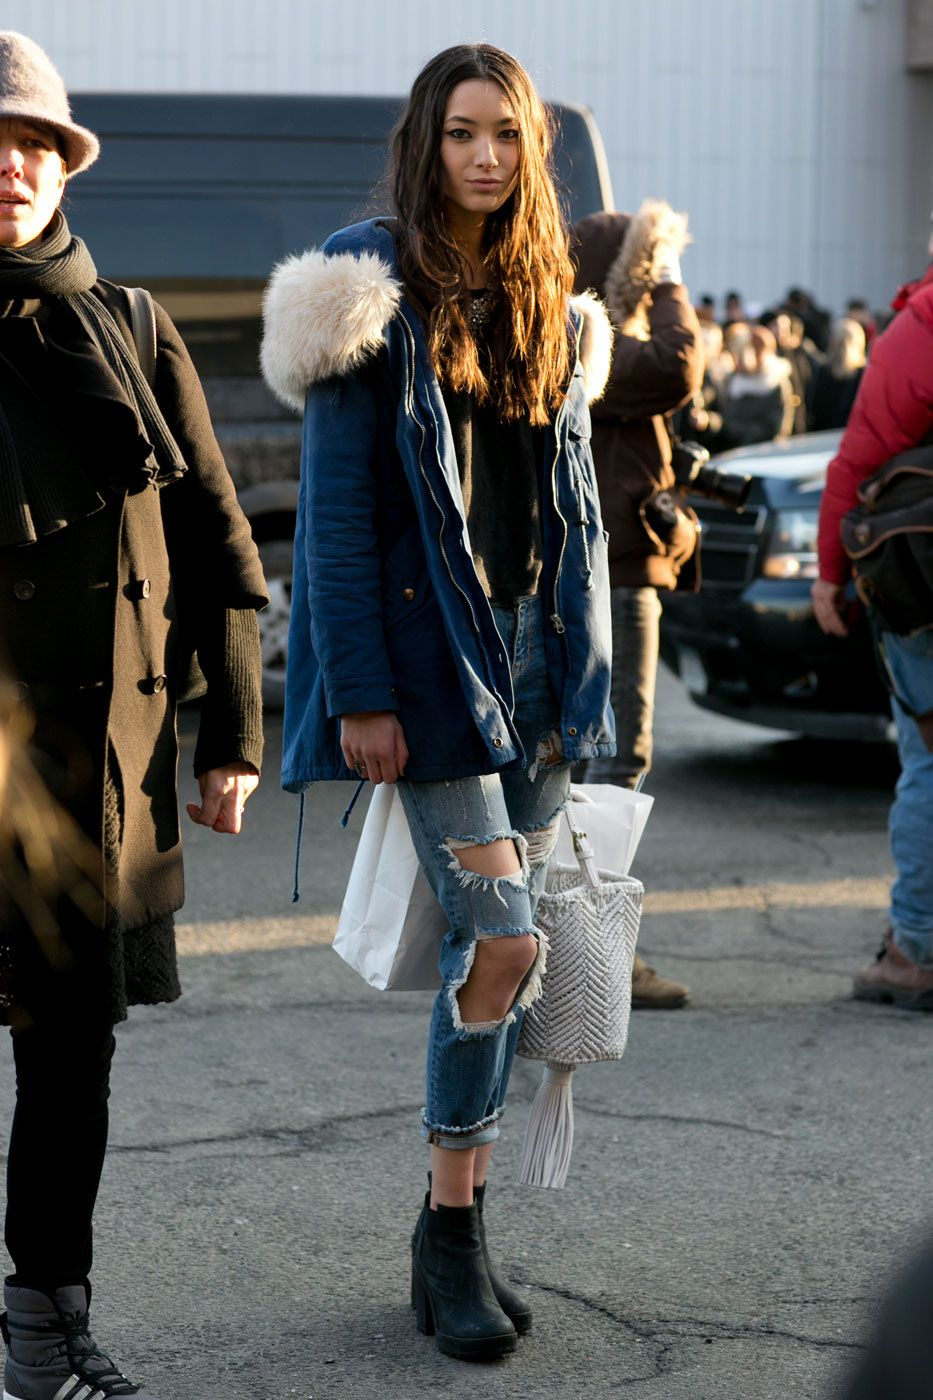 Ny street fashion tumblr 54